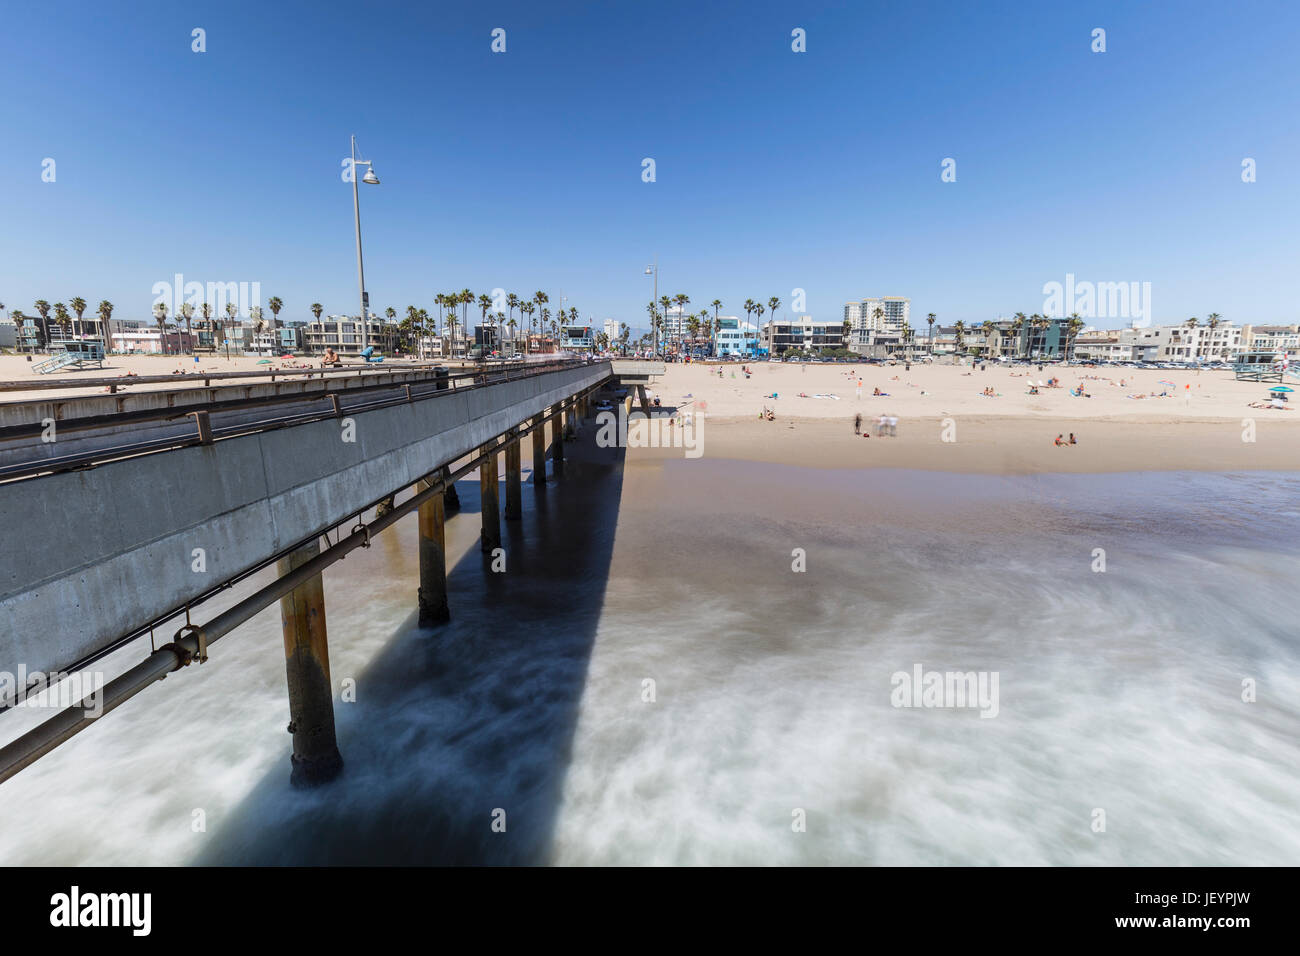 Los Angeles, California, USA - June 26, 2017:  Venice beach pier with motion blur waves. - Stock Image